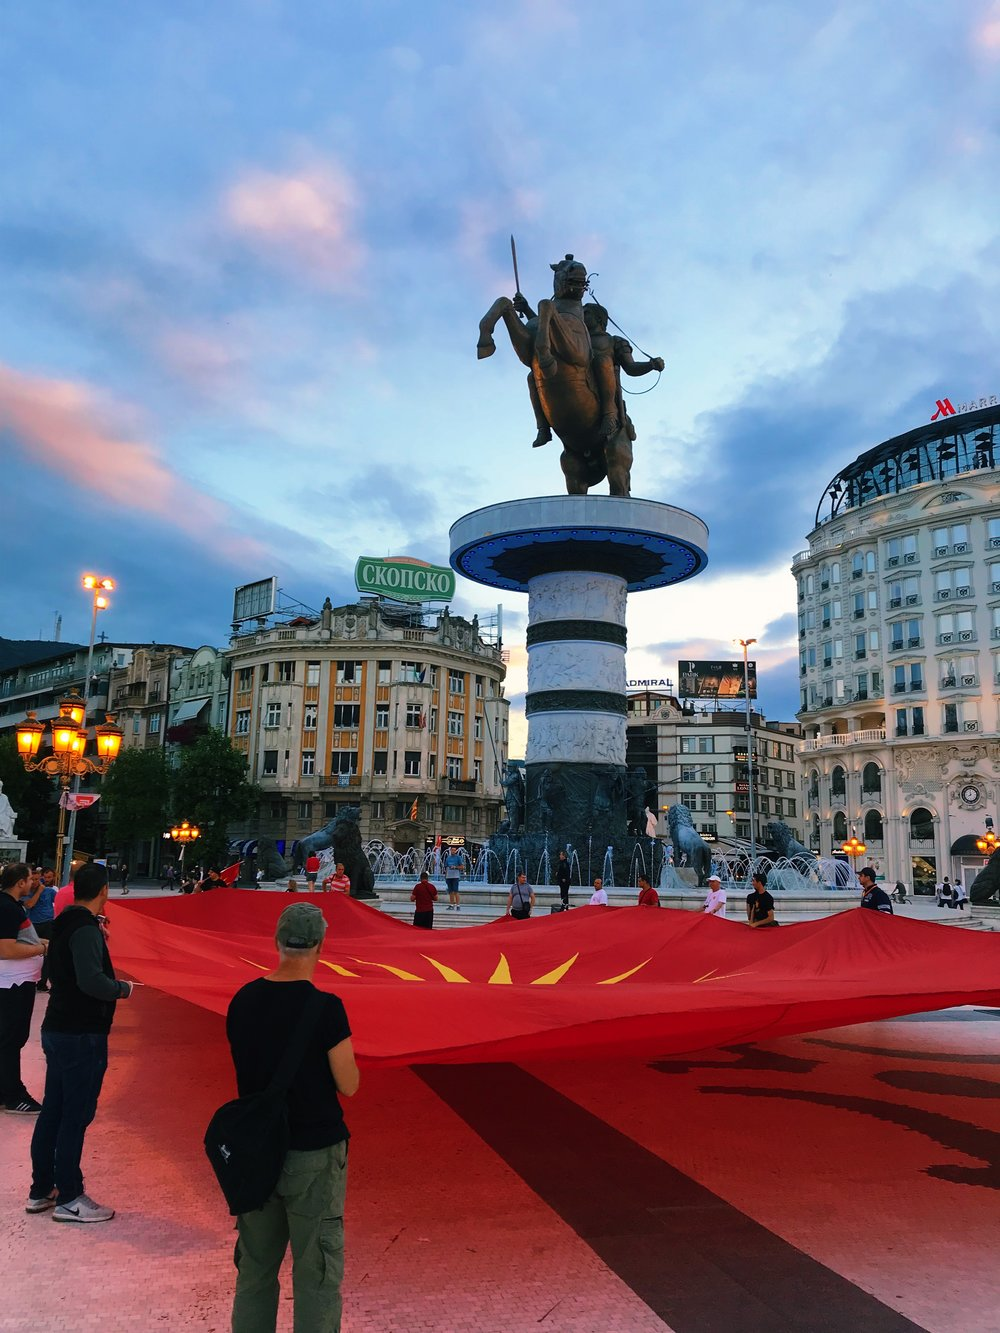 Protesting Macedonia's potential name change in Skopje, the country's capital. in front of the 'Alexander the Great' statue.